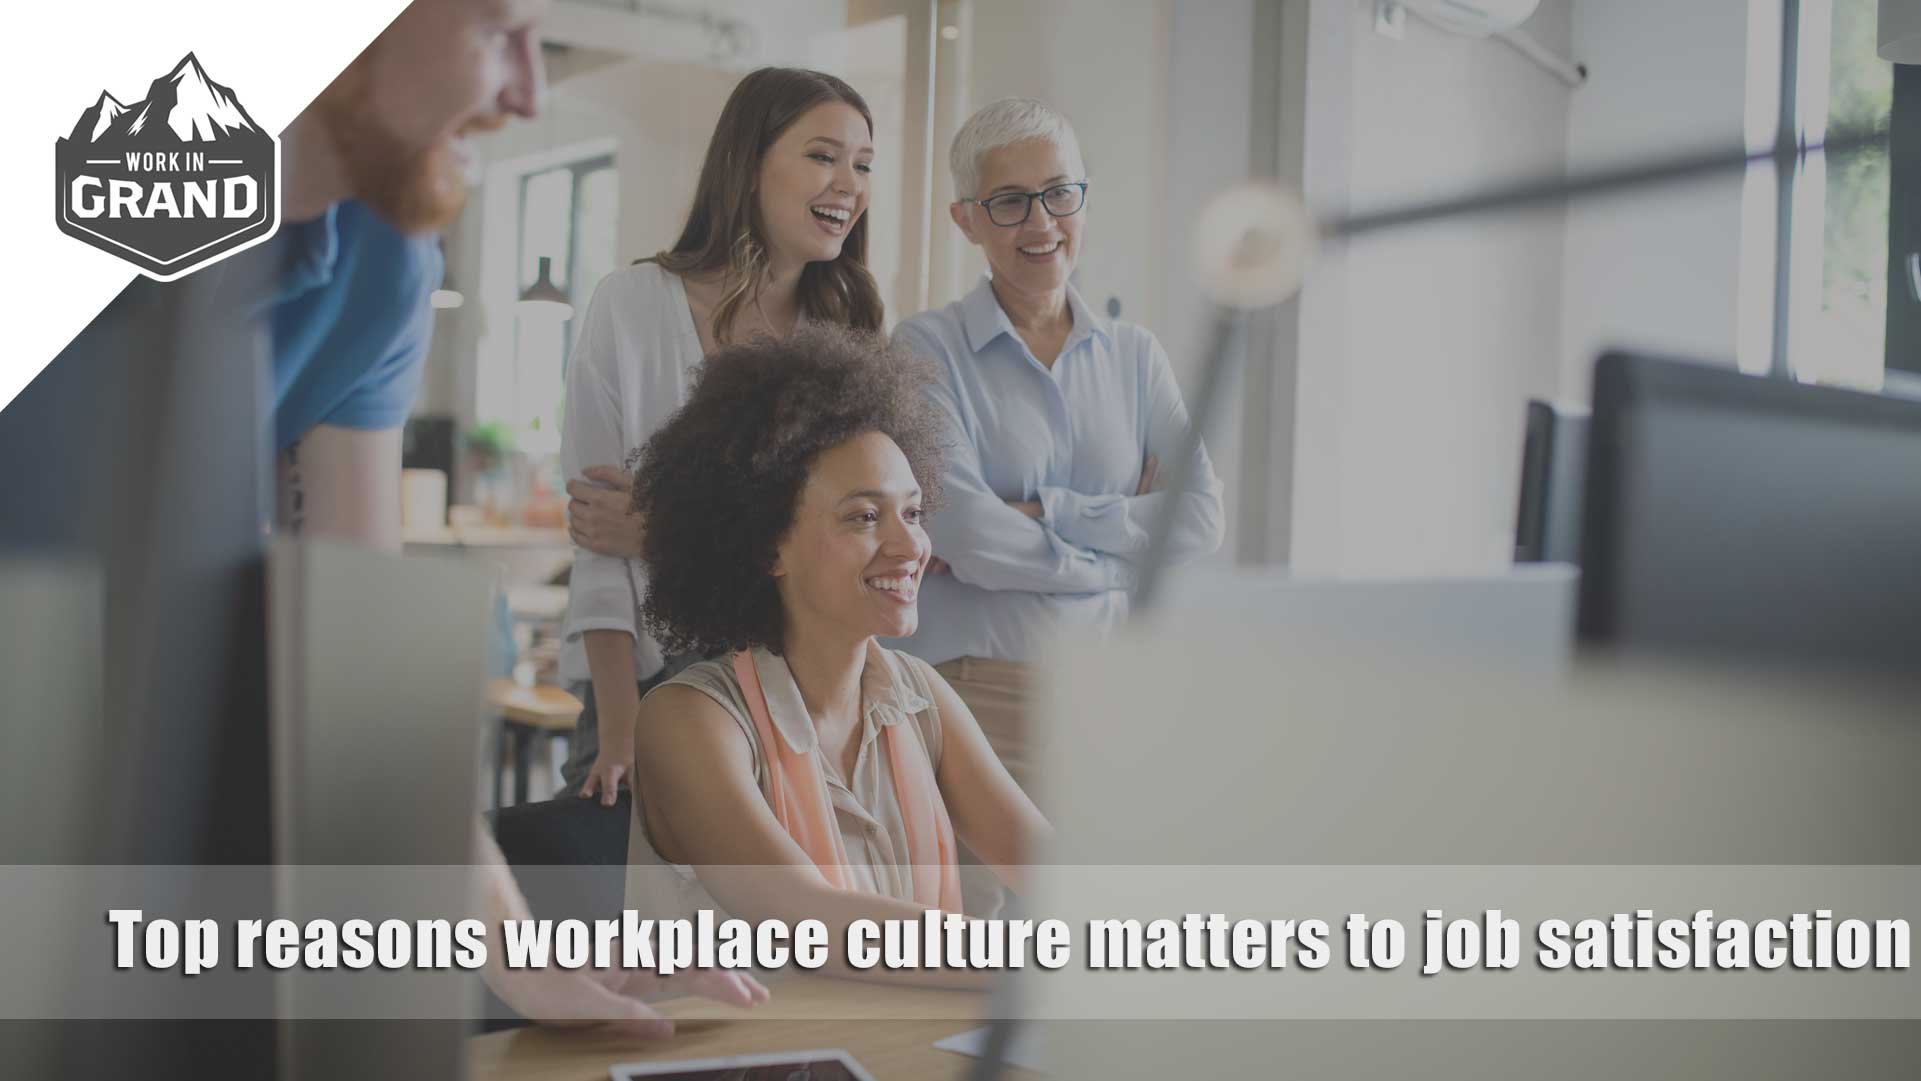 Top reasons workplace culture matters to job satisfaction